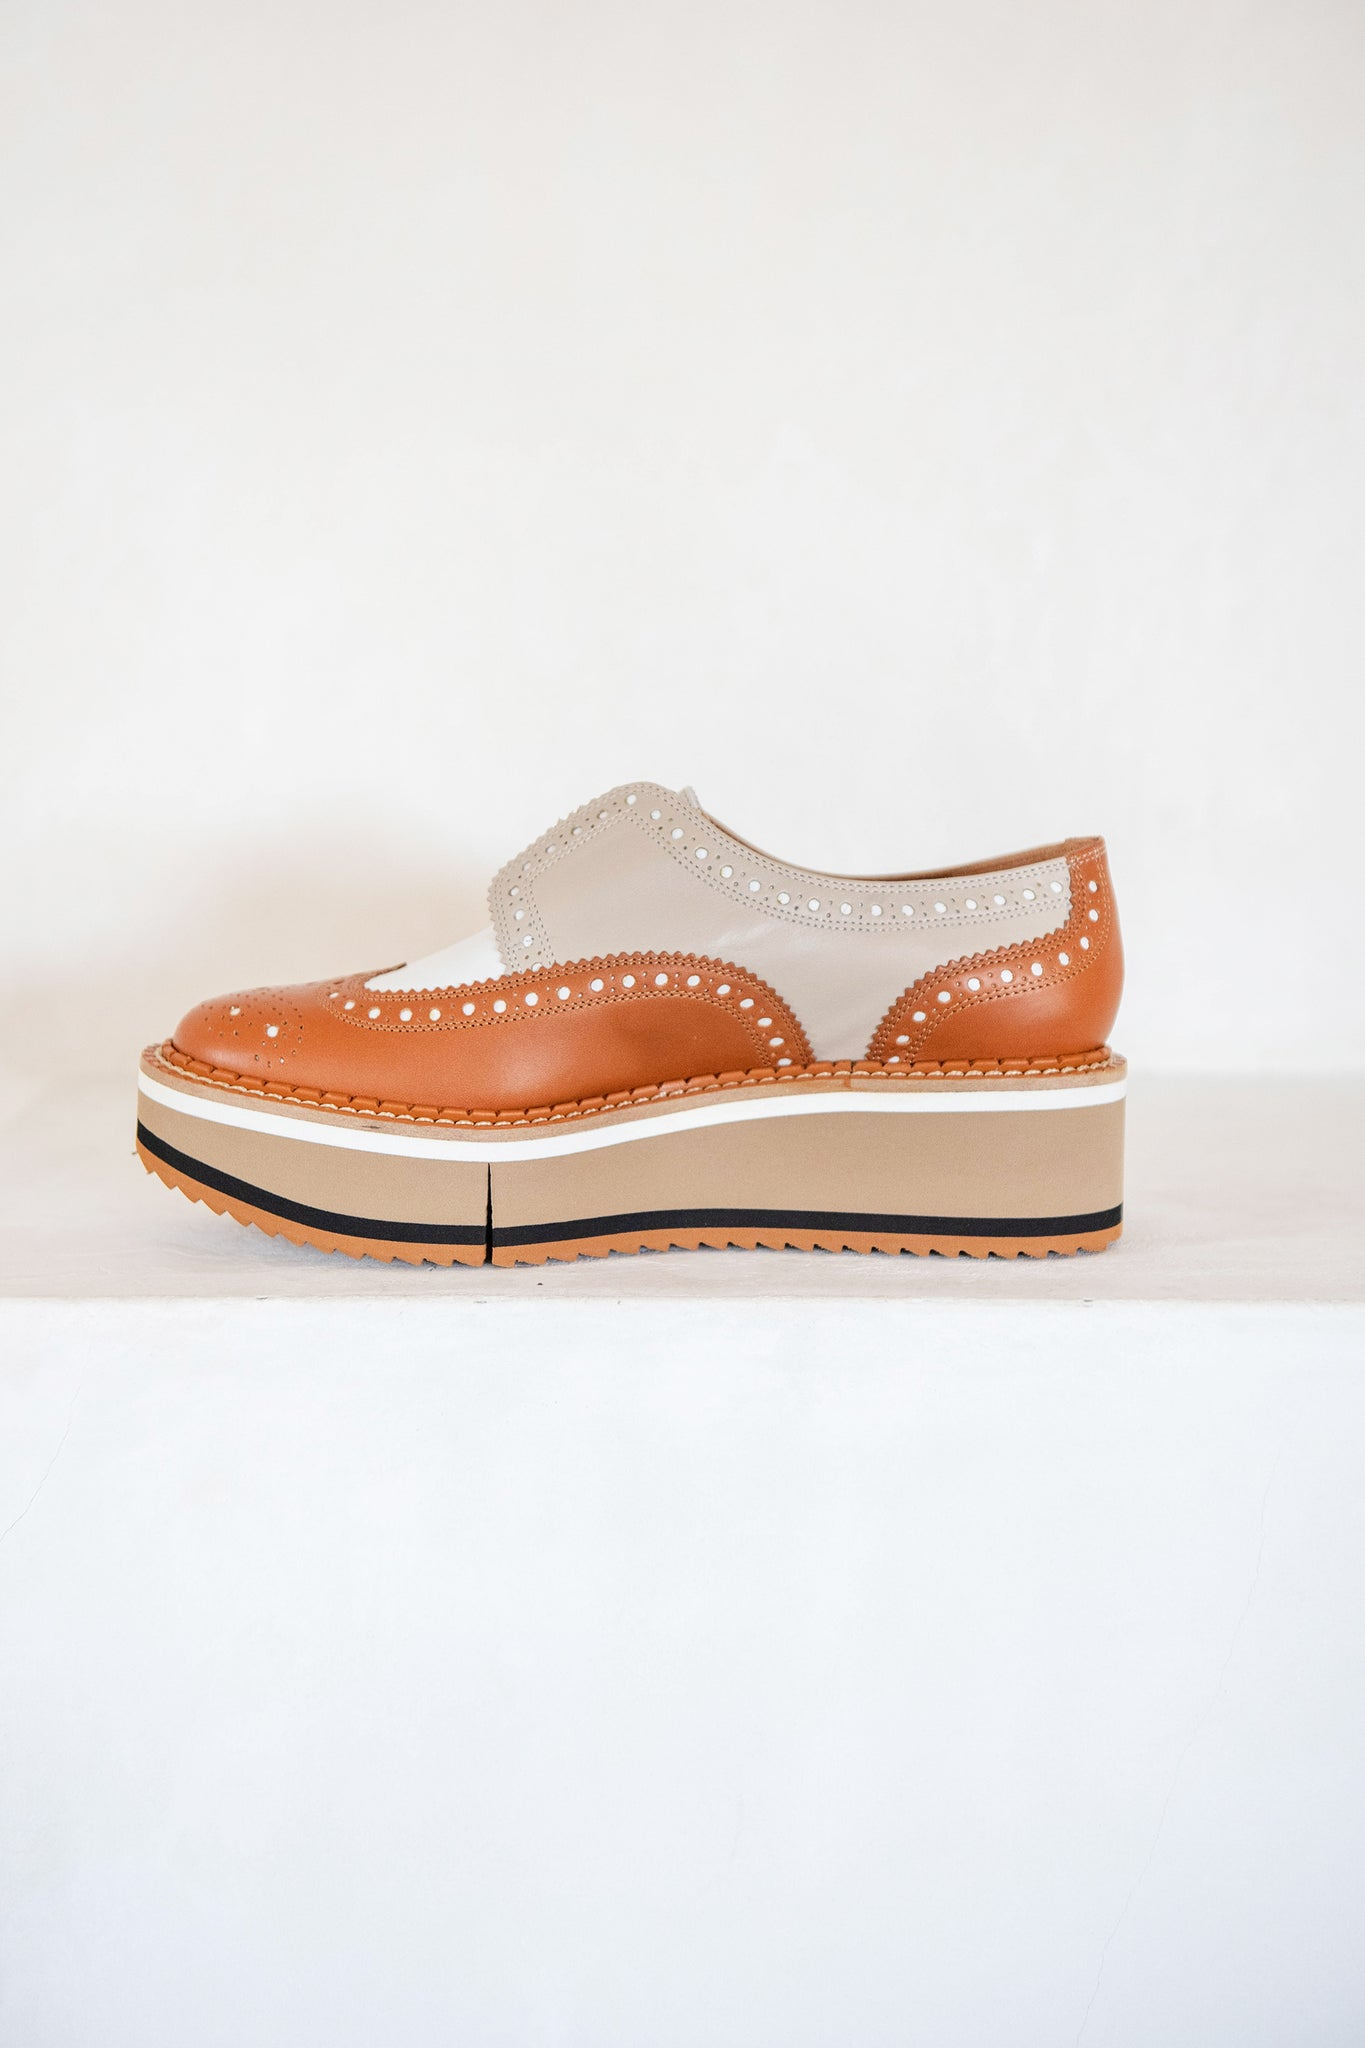 Clergerie - DERBIES BECKA oxford, CAMEL